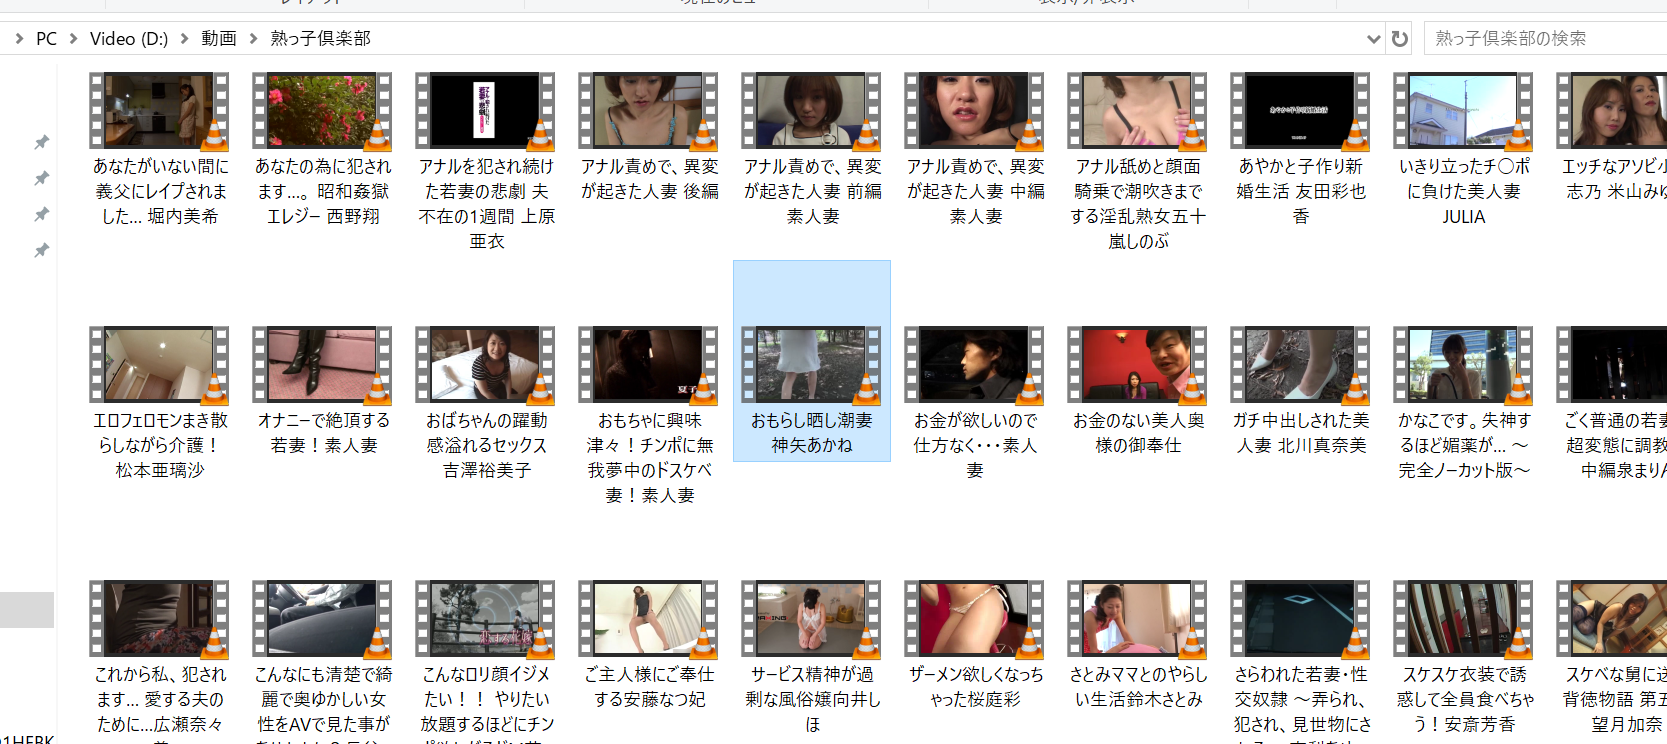 some of the uncensored JAV SEX videos I downloaded when I was a member of the Urekko Club